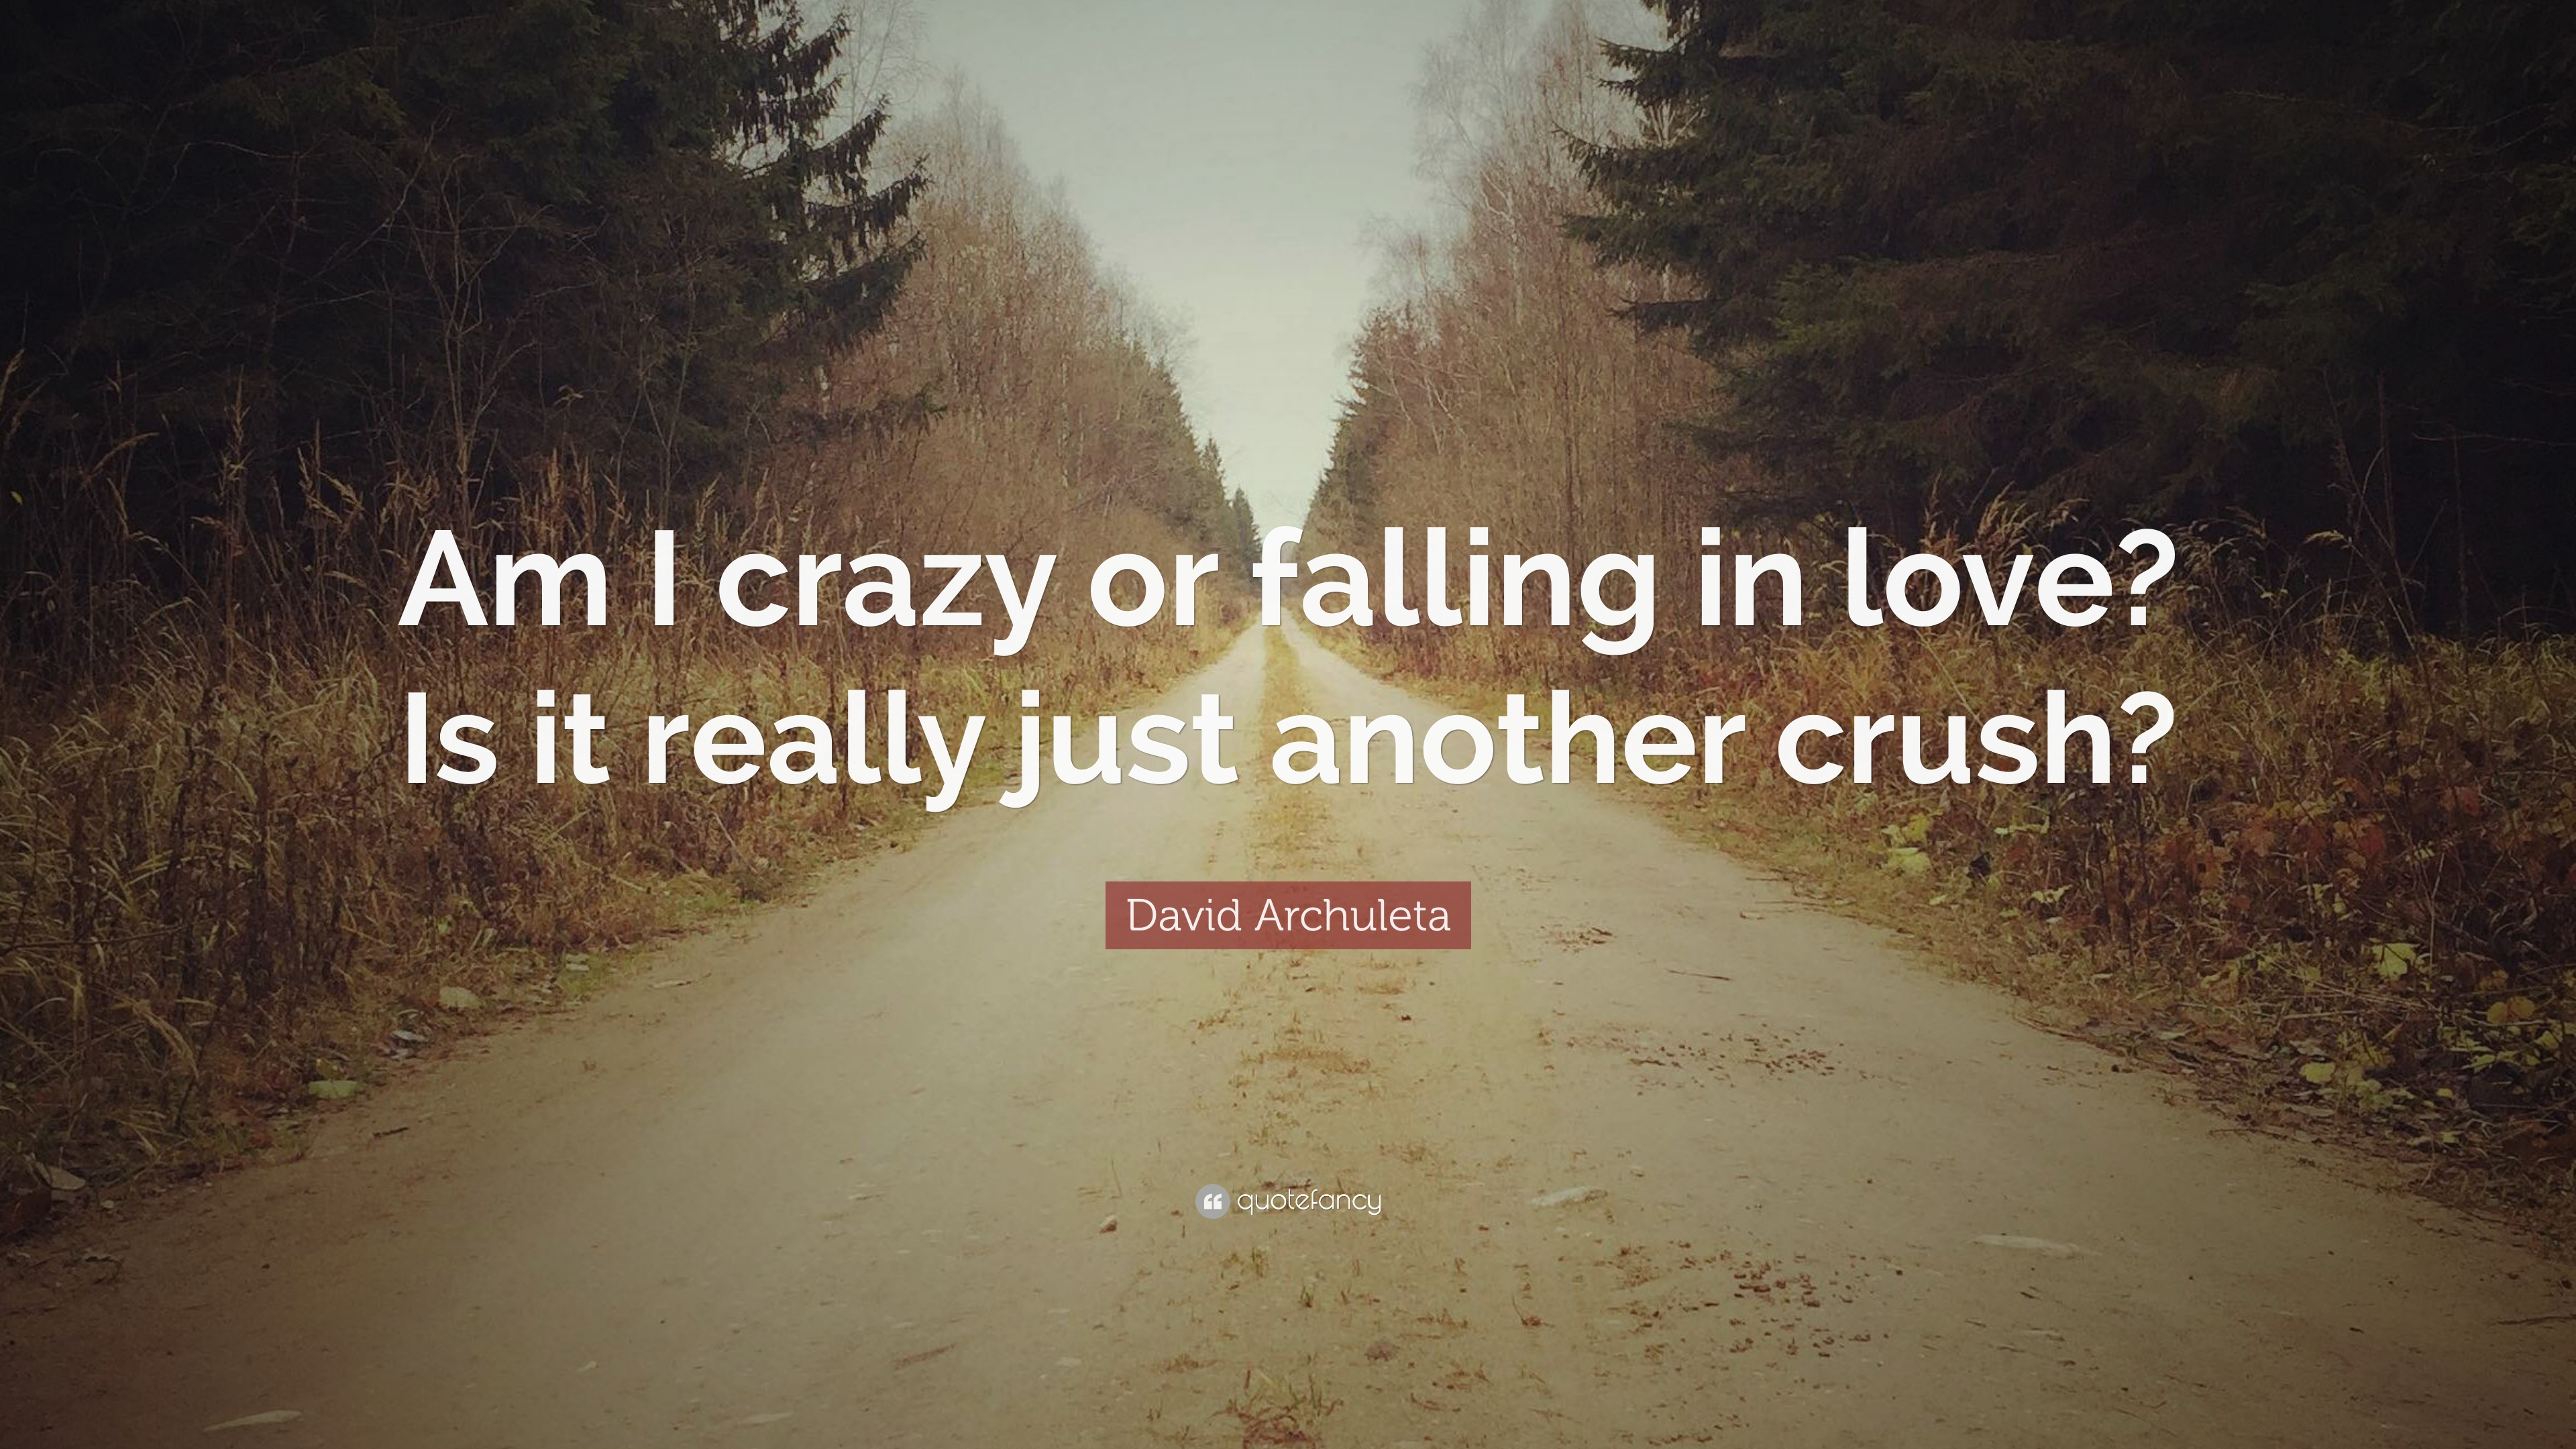 Crush Falling Love Quotes Crazy Pictures Www Picturesboss Com